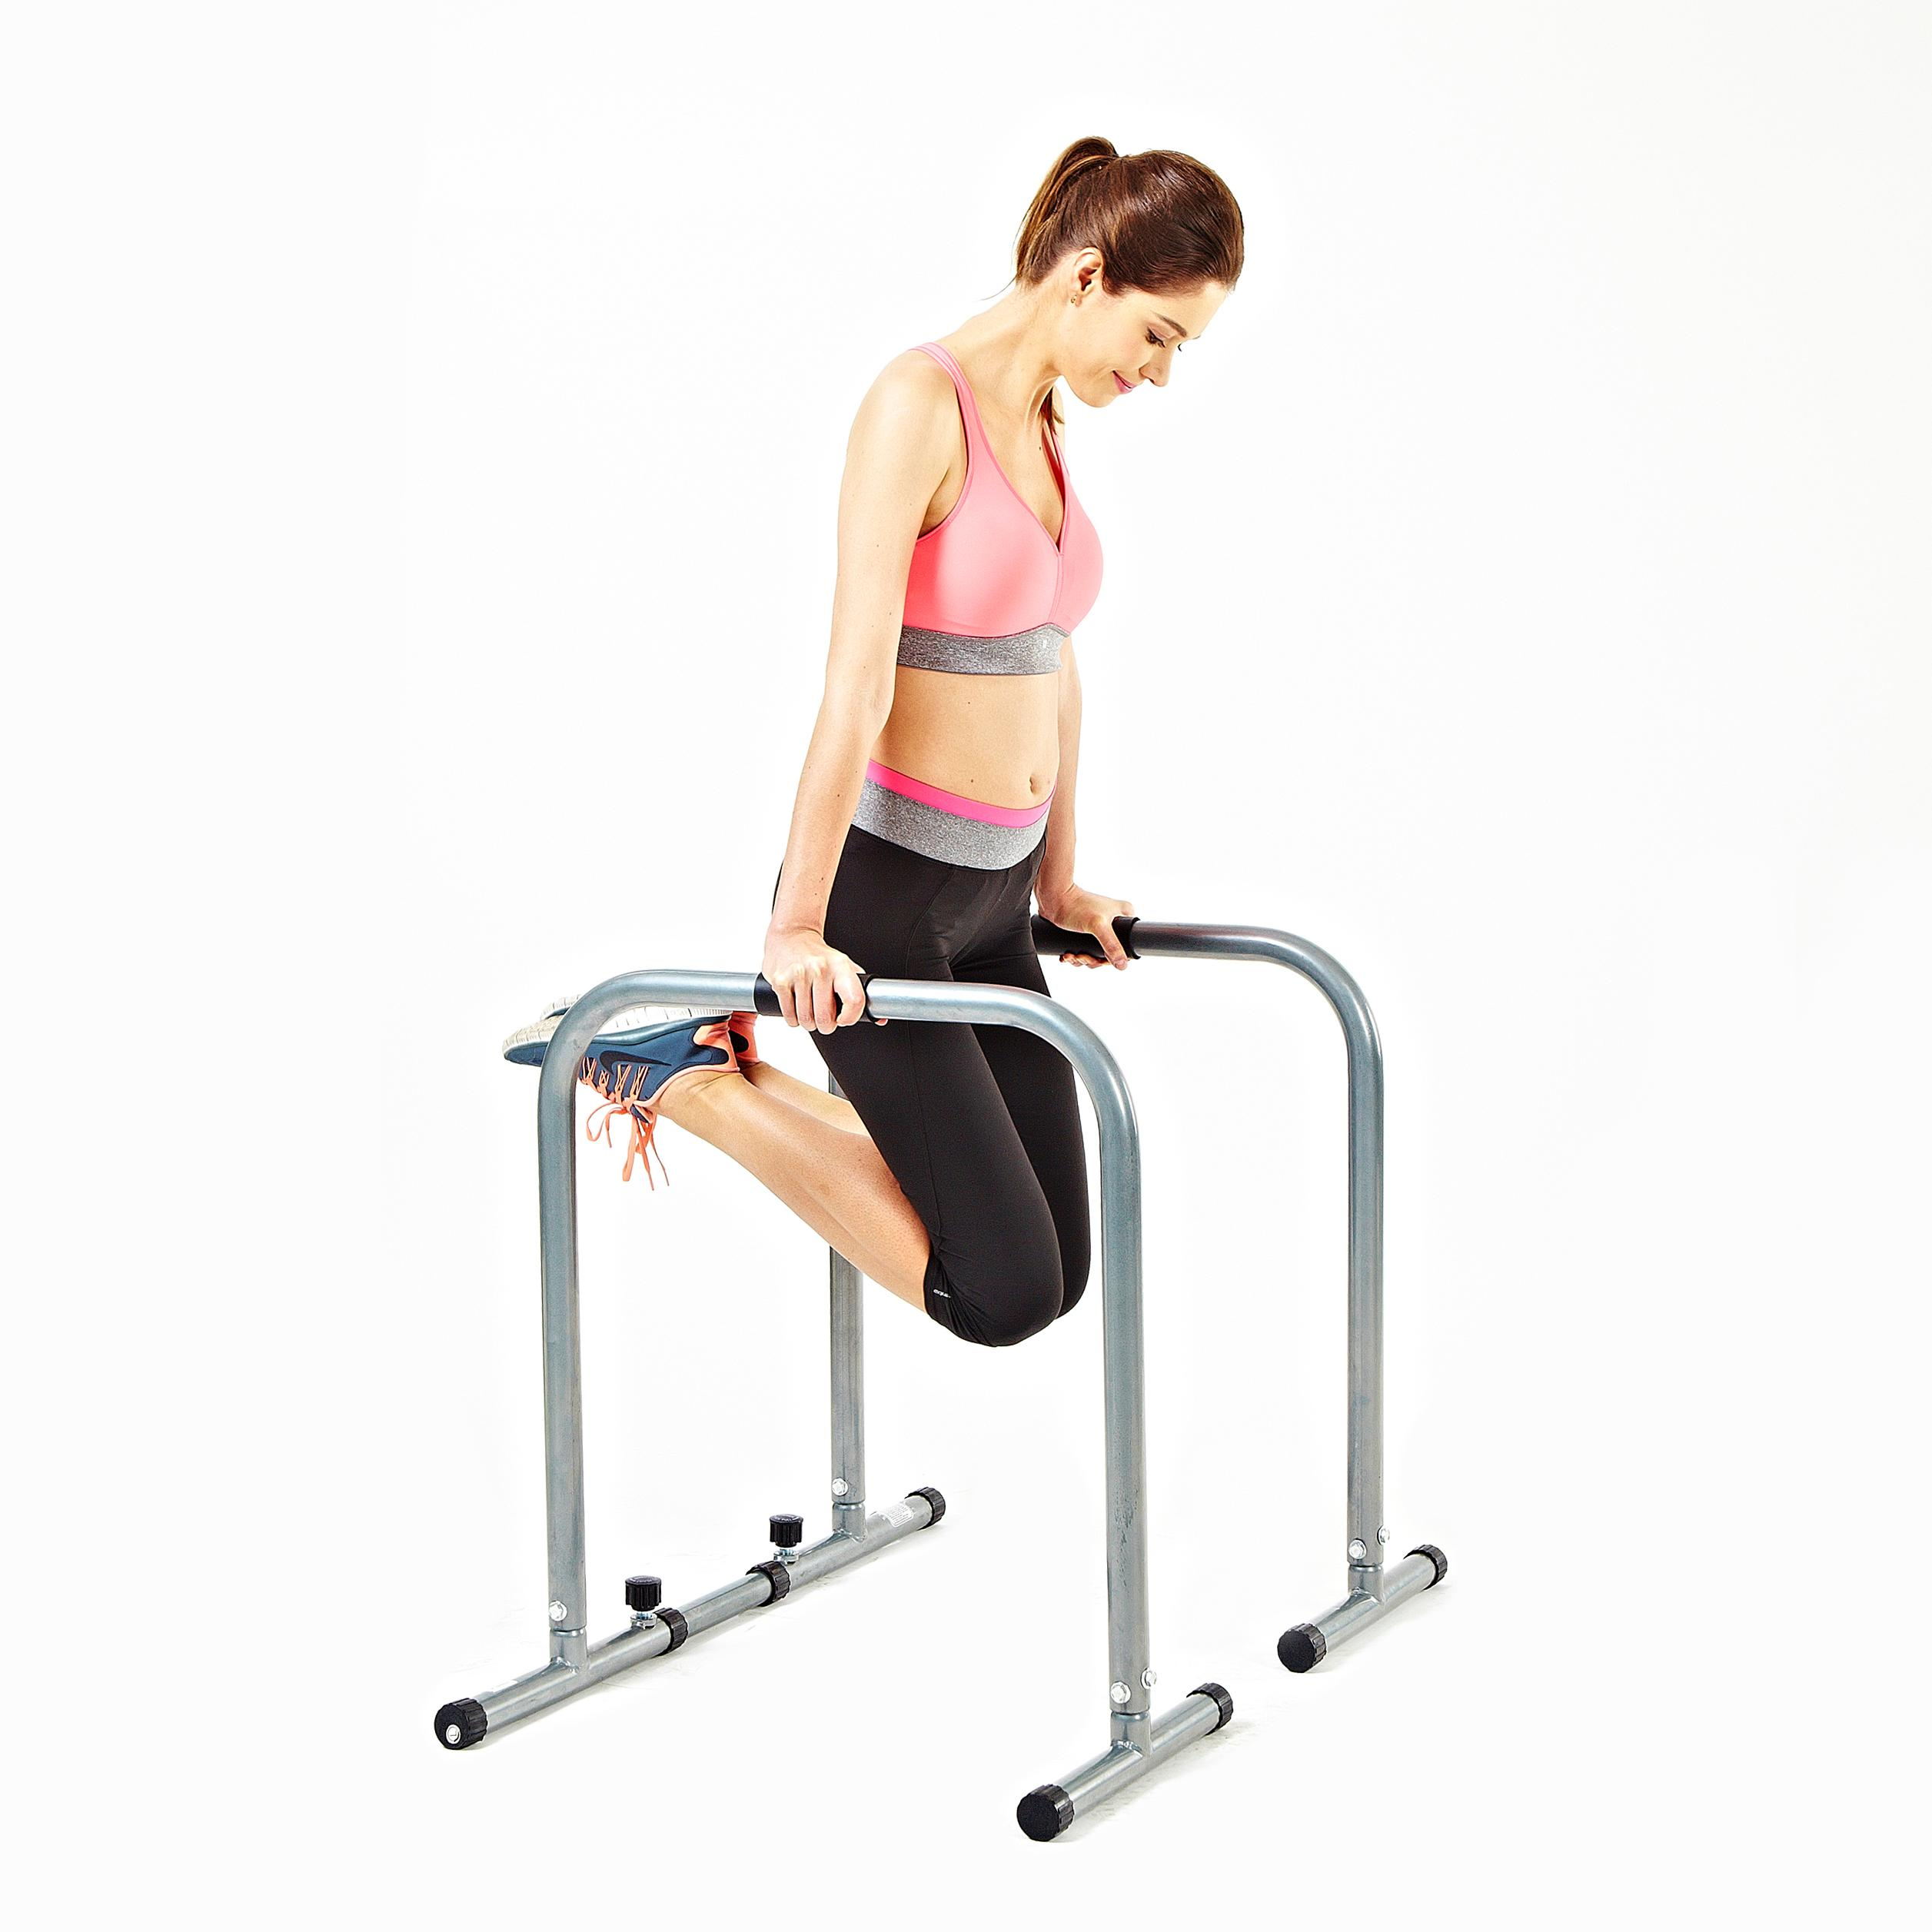 Dips Replacement Exercise: Amazon.com : Sunny Health & Fitness SF-BH6507 Dip Station